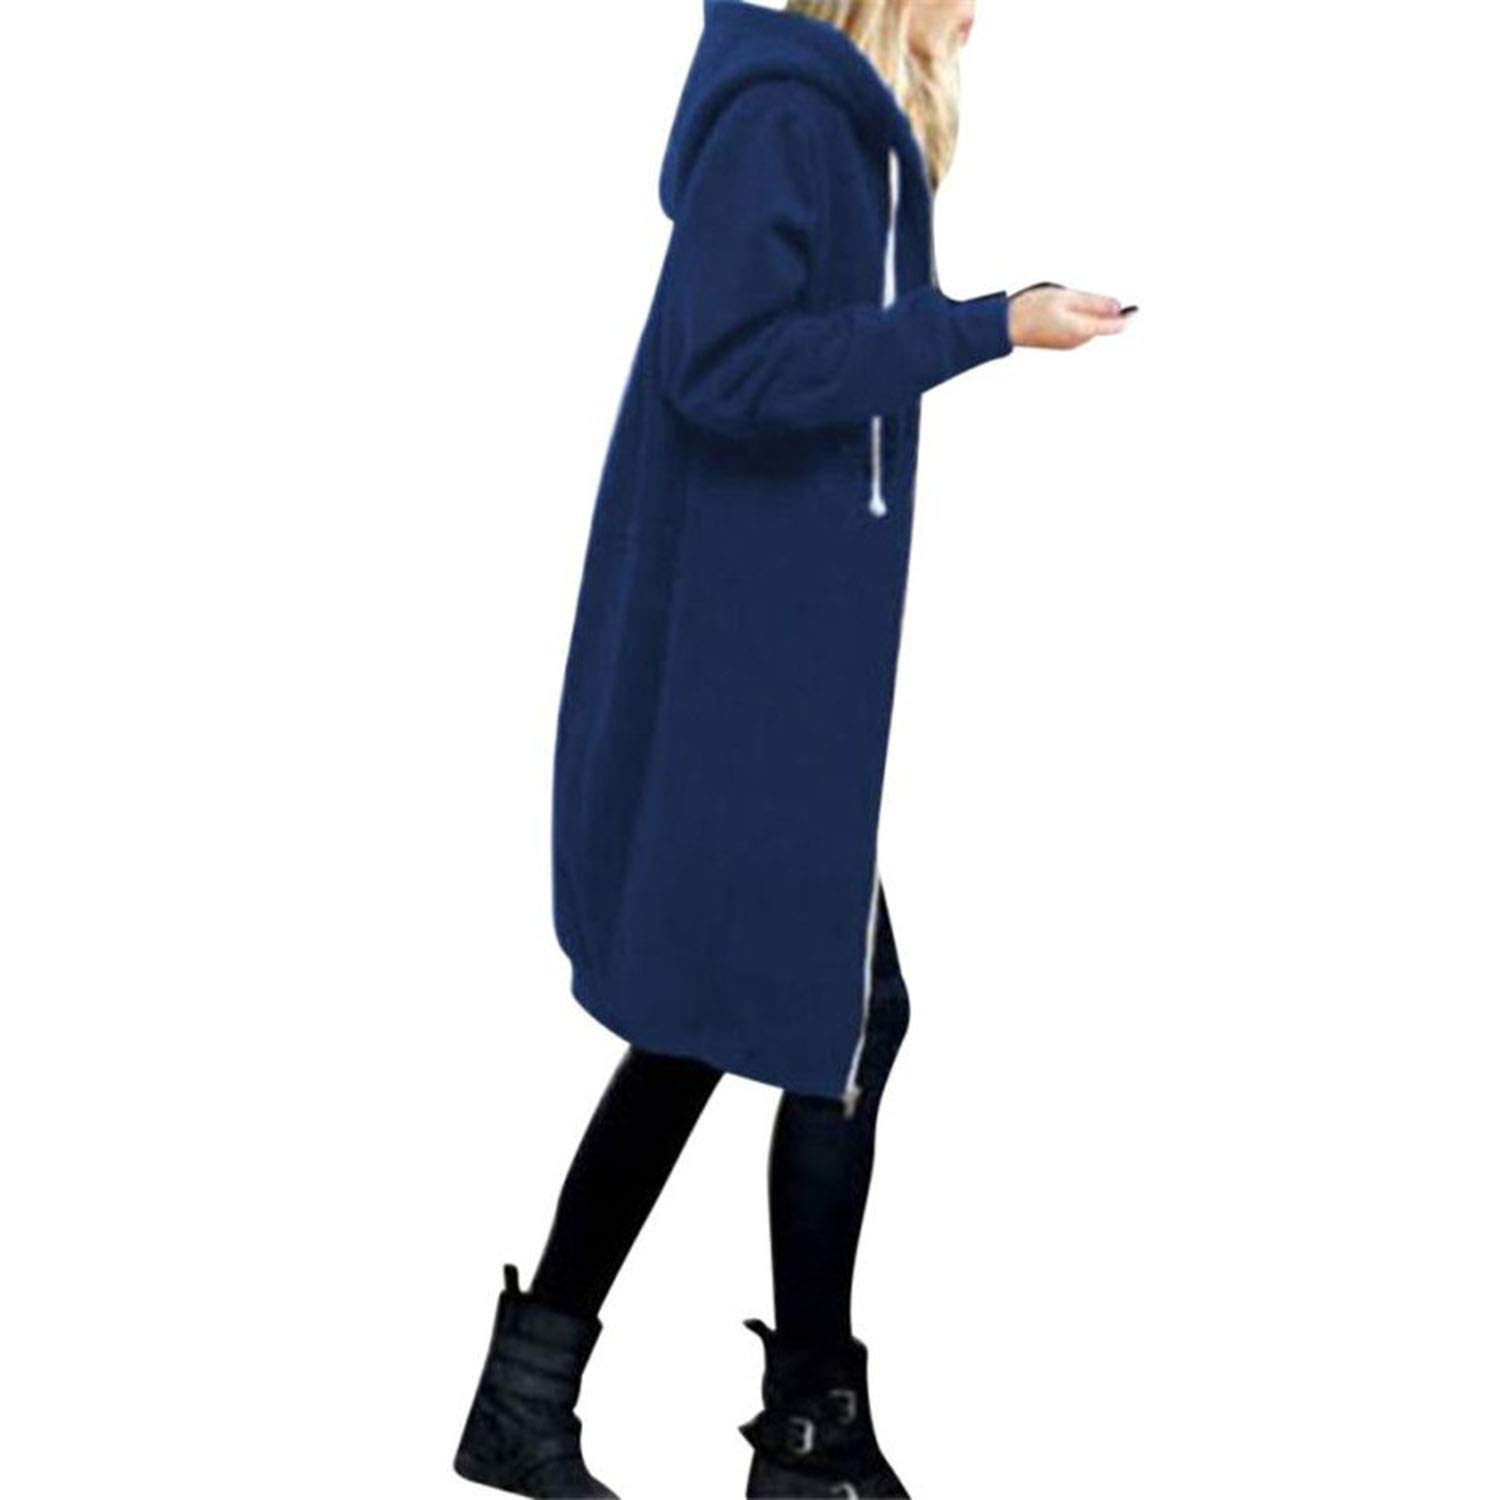 Amazon.com: Sweatshirt Women Warm Zipper Long Coat Jacket Tops Outwear Hoodies Hoodie Sudadera Mujer L1825,Blue,XXL,China: Clothing